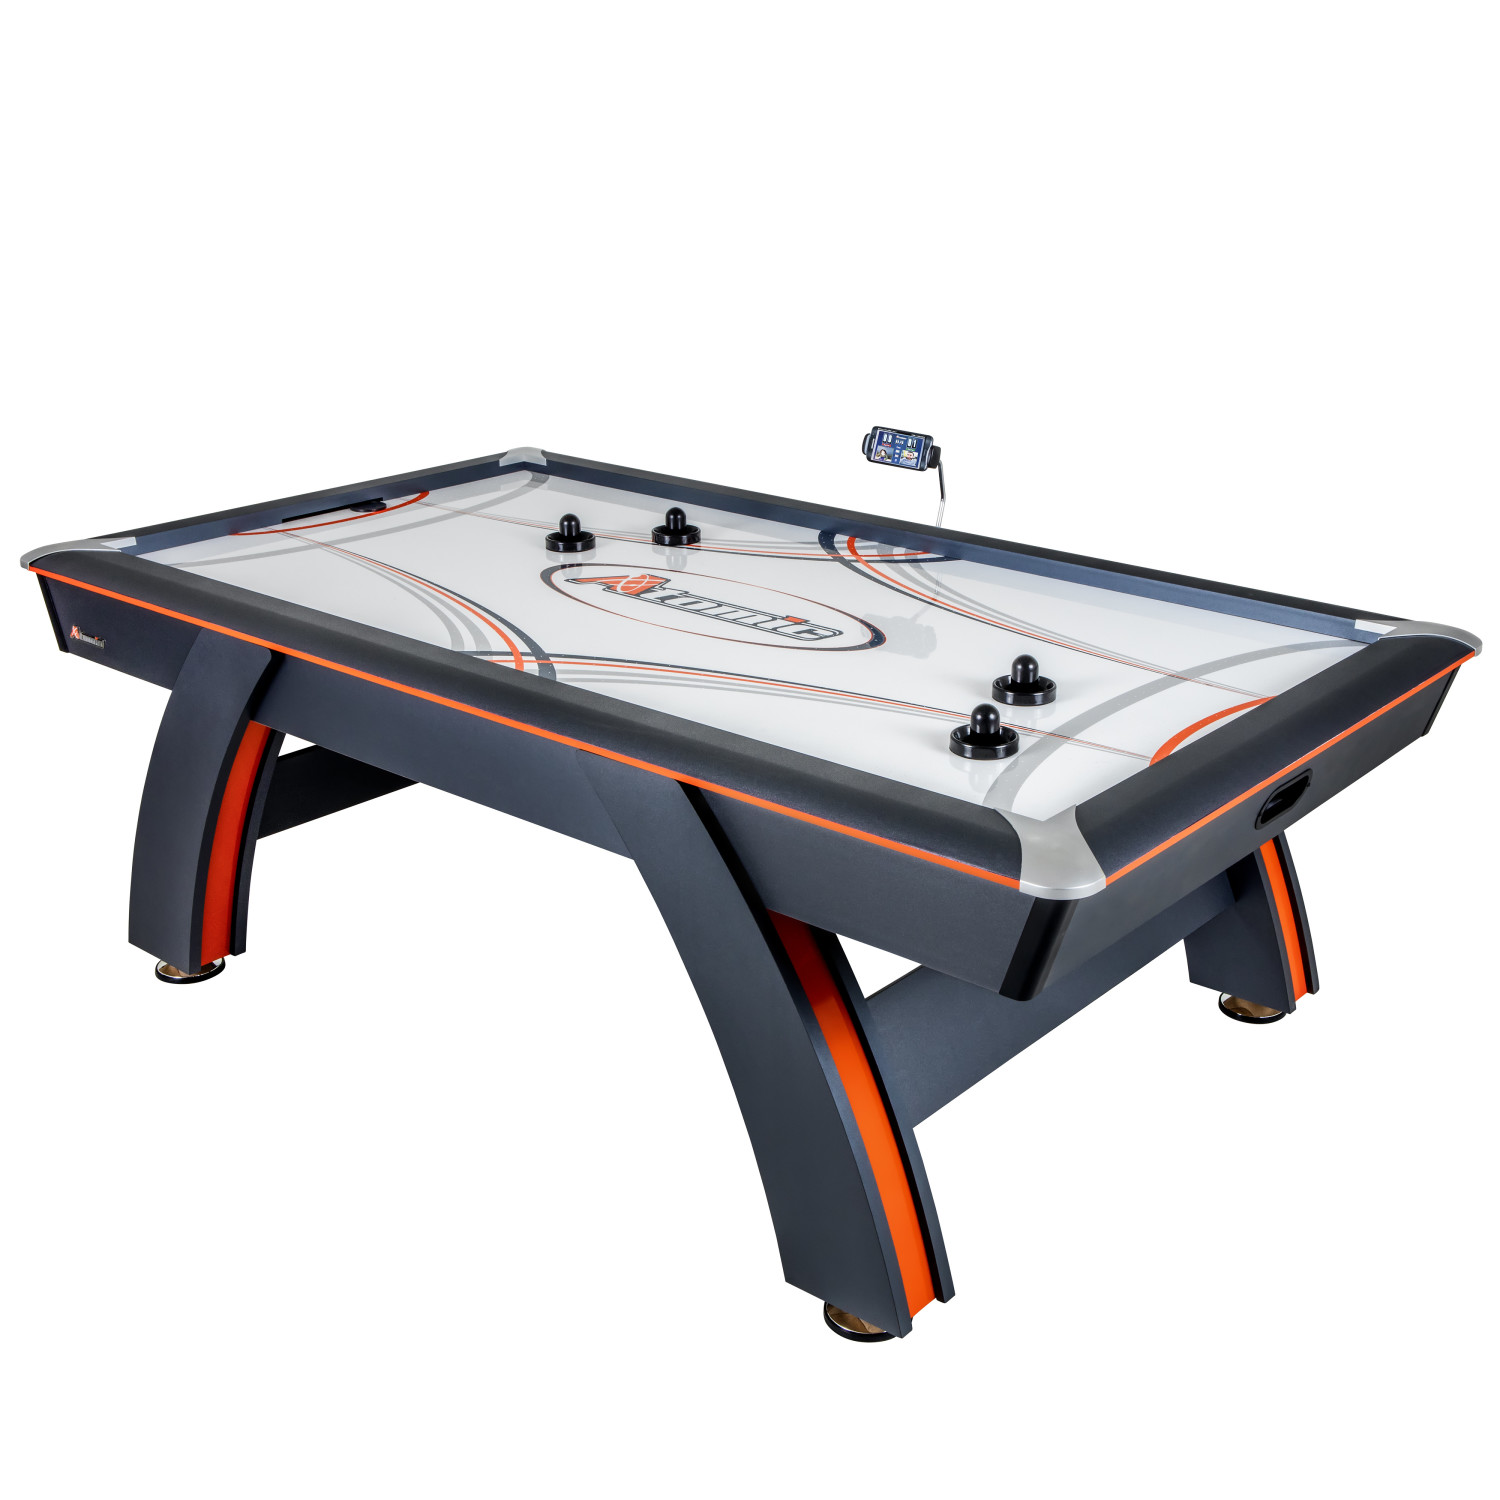 Atomic 7.5′ Contour Air Powered Hockey Table with ScoreLinx Mobile App Technology